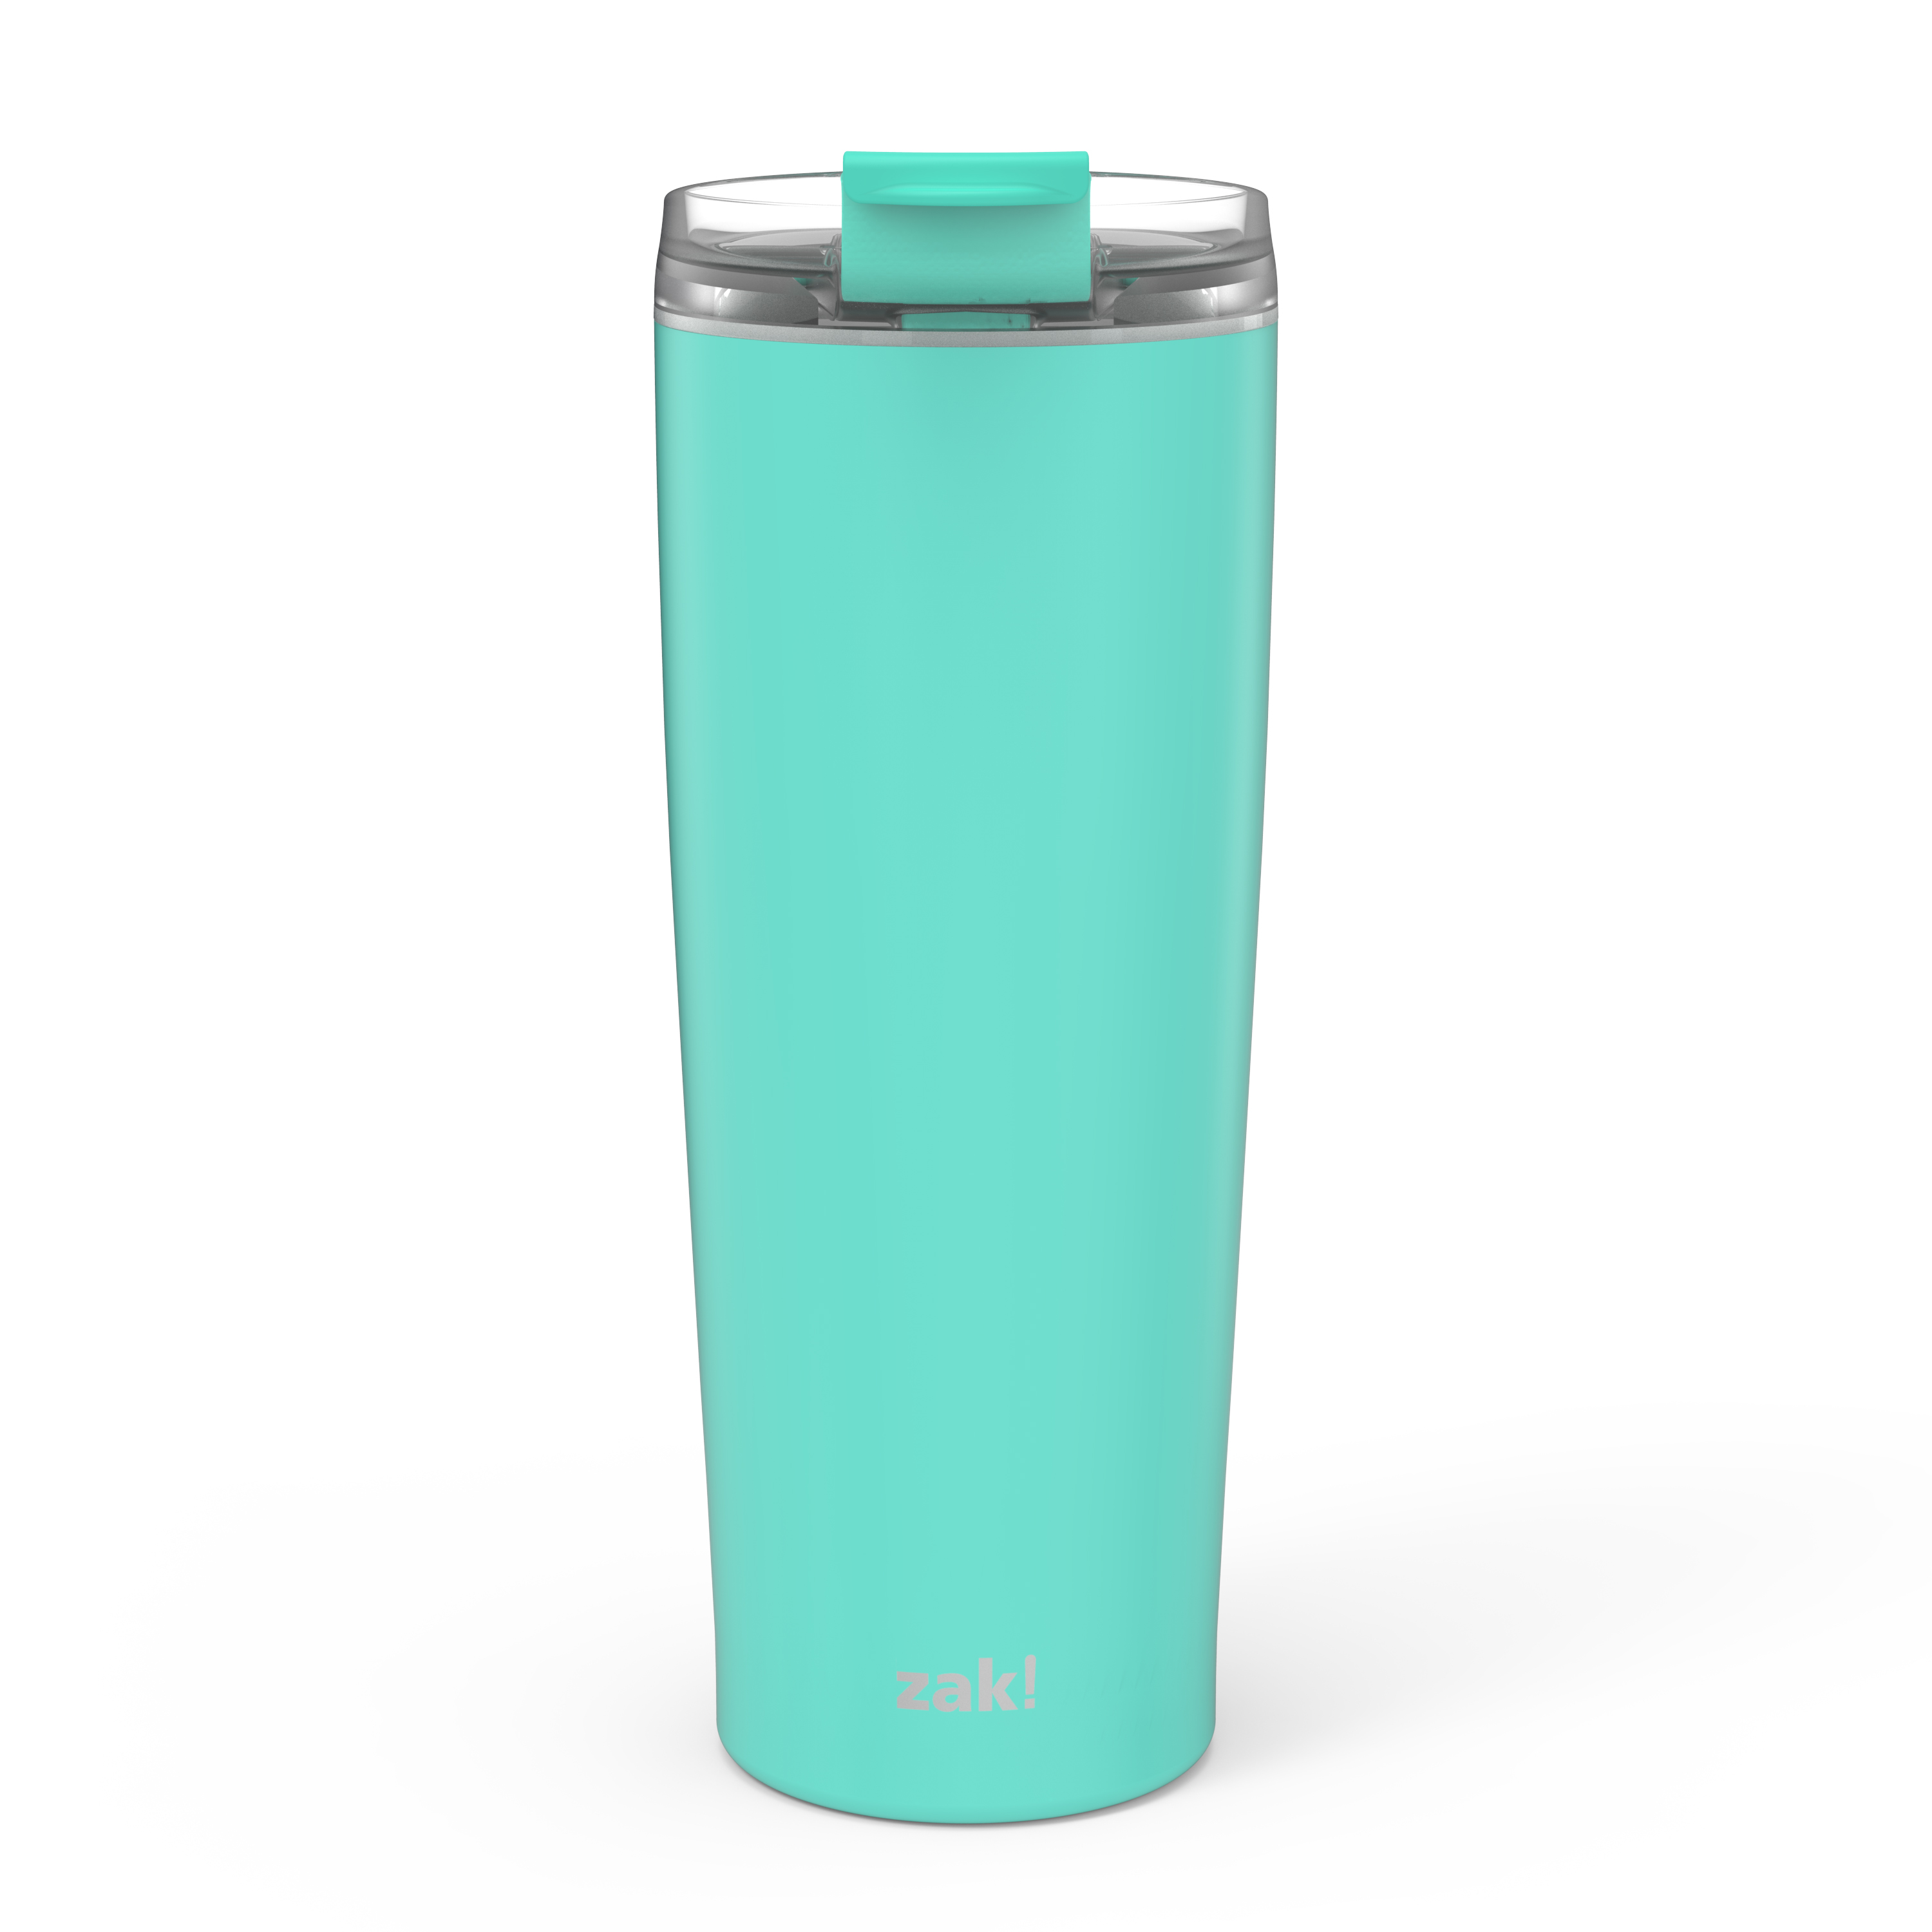 Aberdeen 24 ounce Vacuum Insulated Stainless Steel Tumbler, Green slideshow image 1